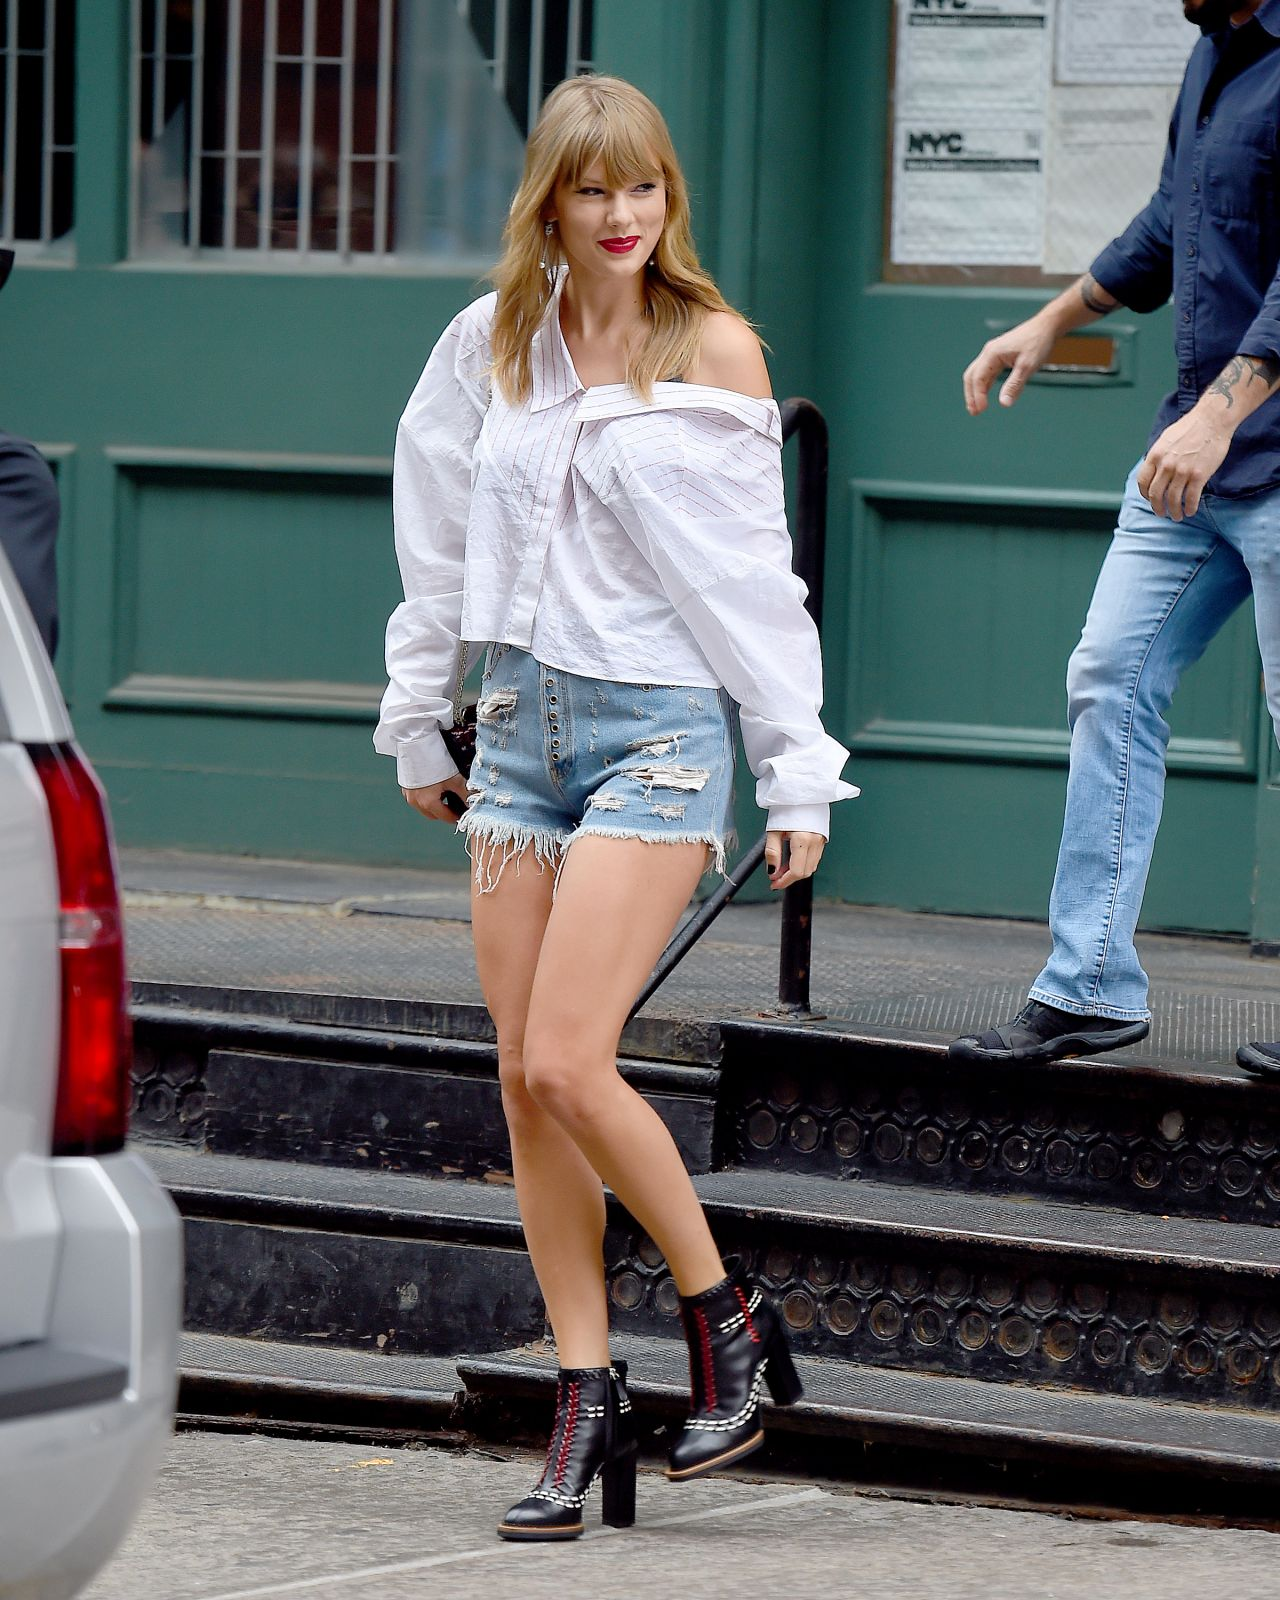 Taylor Swift Leggy In Jeans Shorts Leaves Her Apartment In Nyc 07 22 2018 Celebmafia